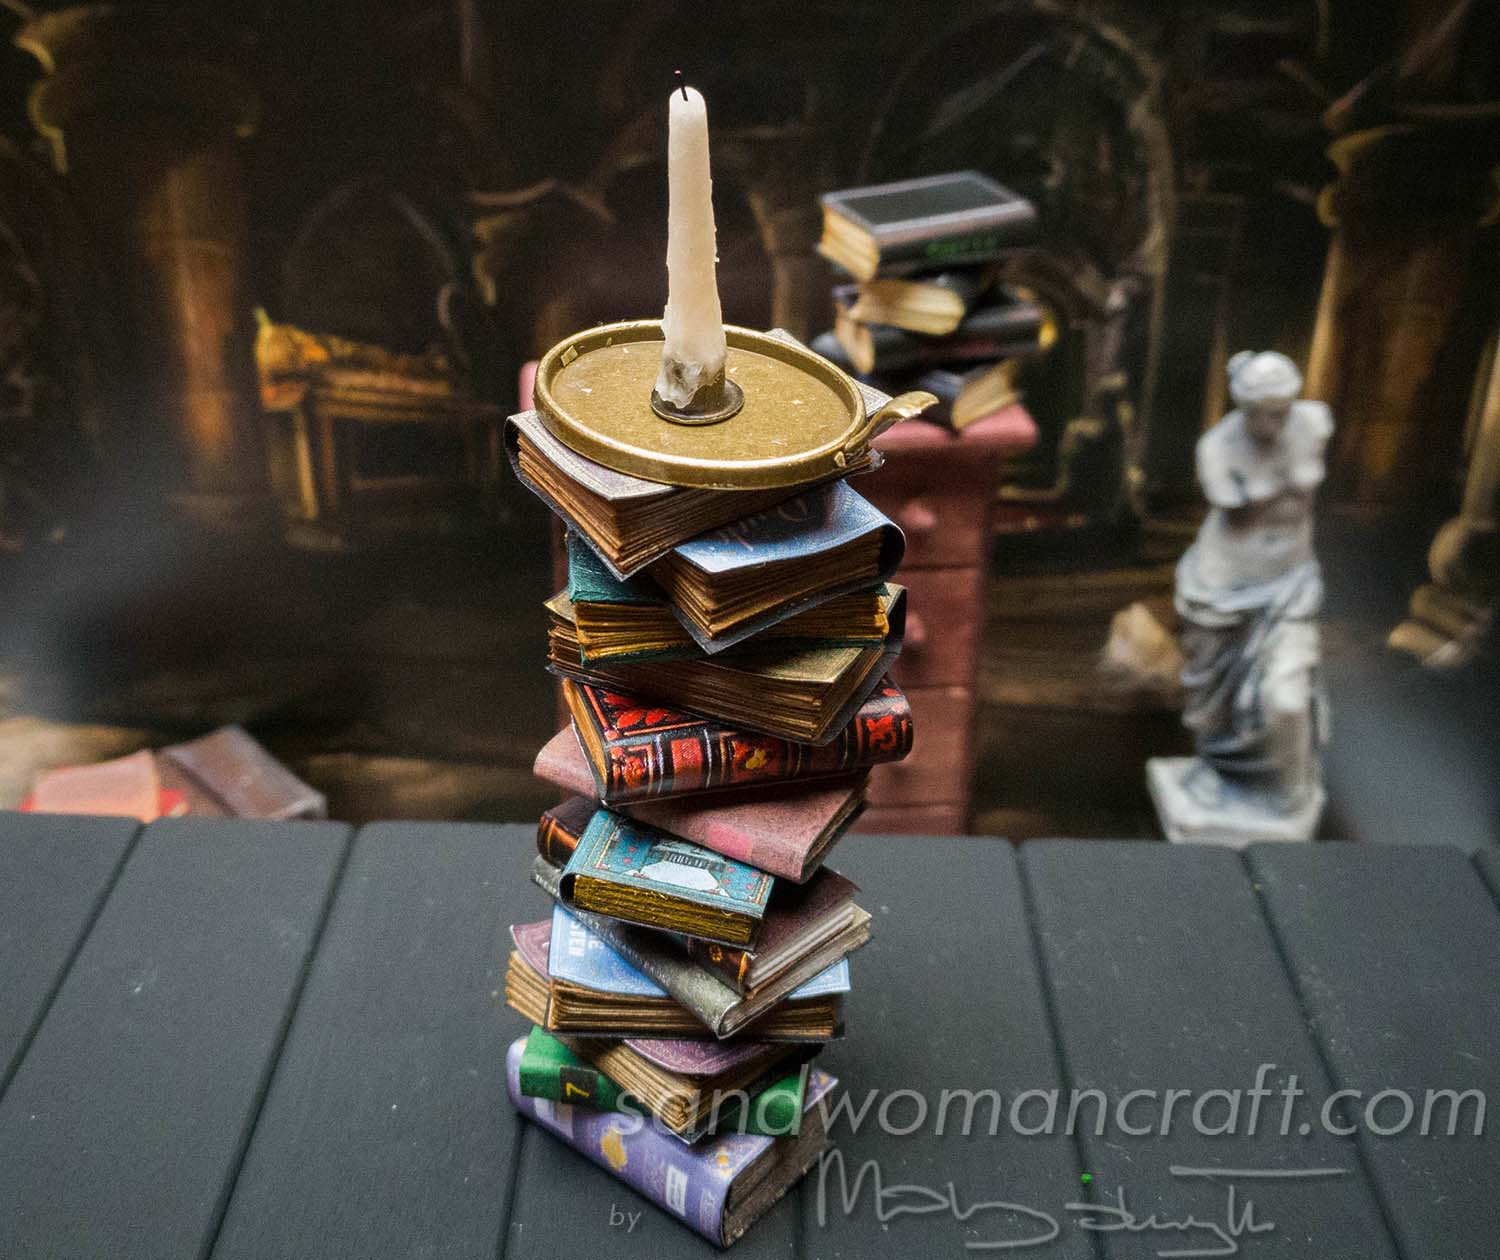 Pile of miniature books in 1:12 scale